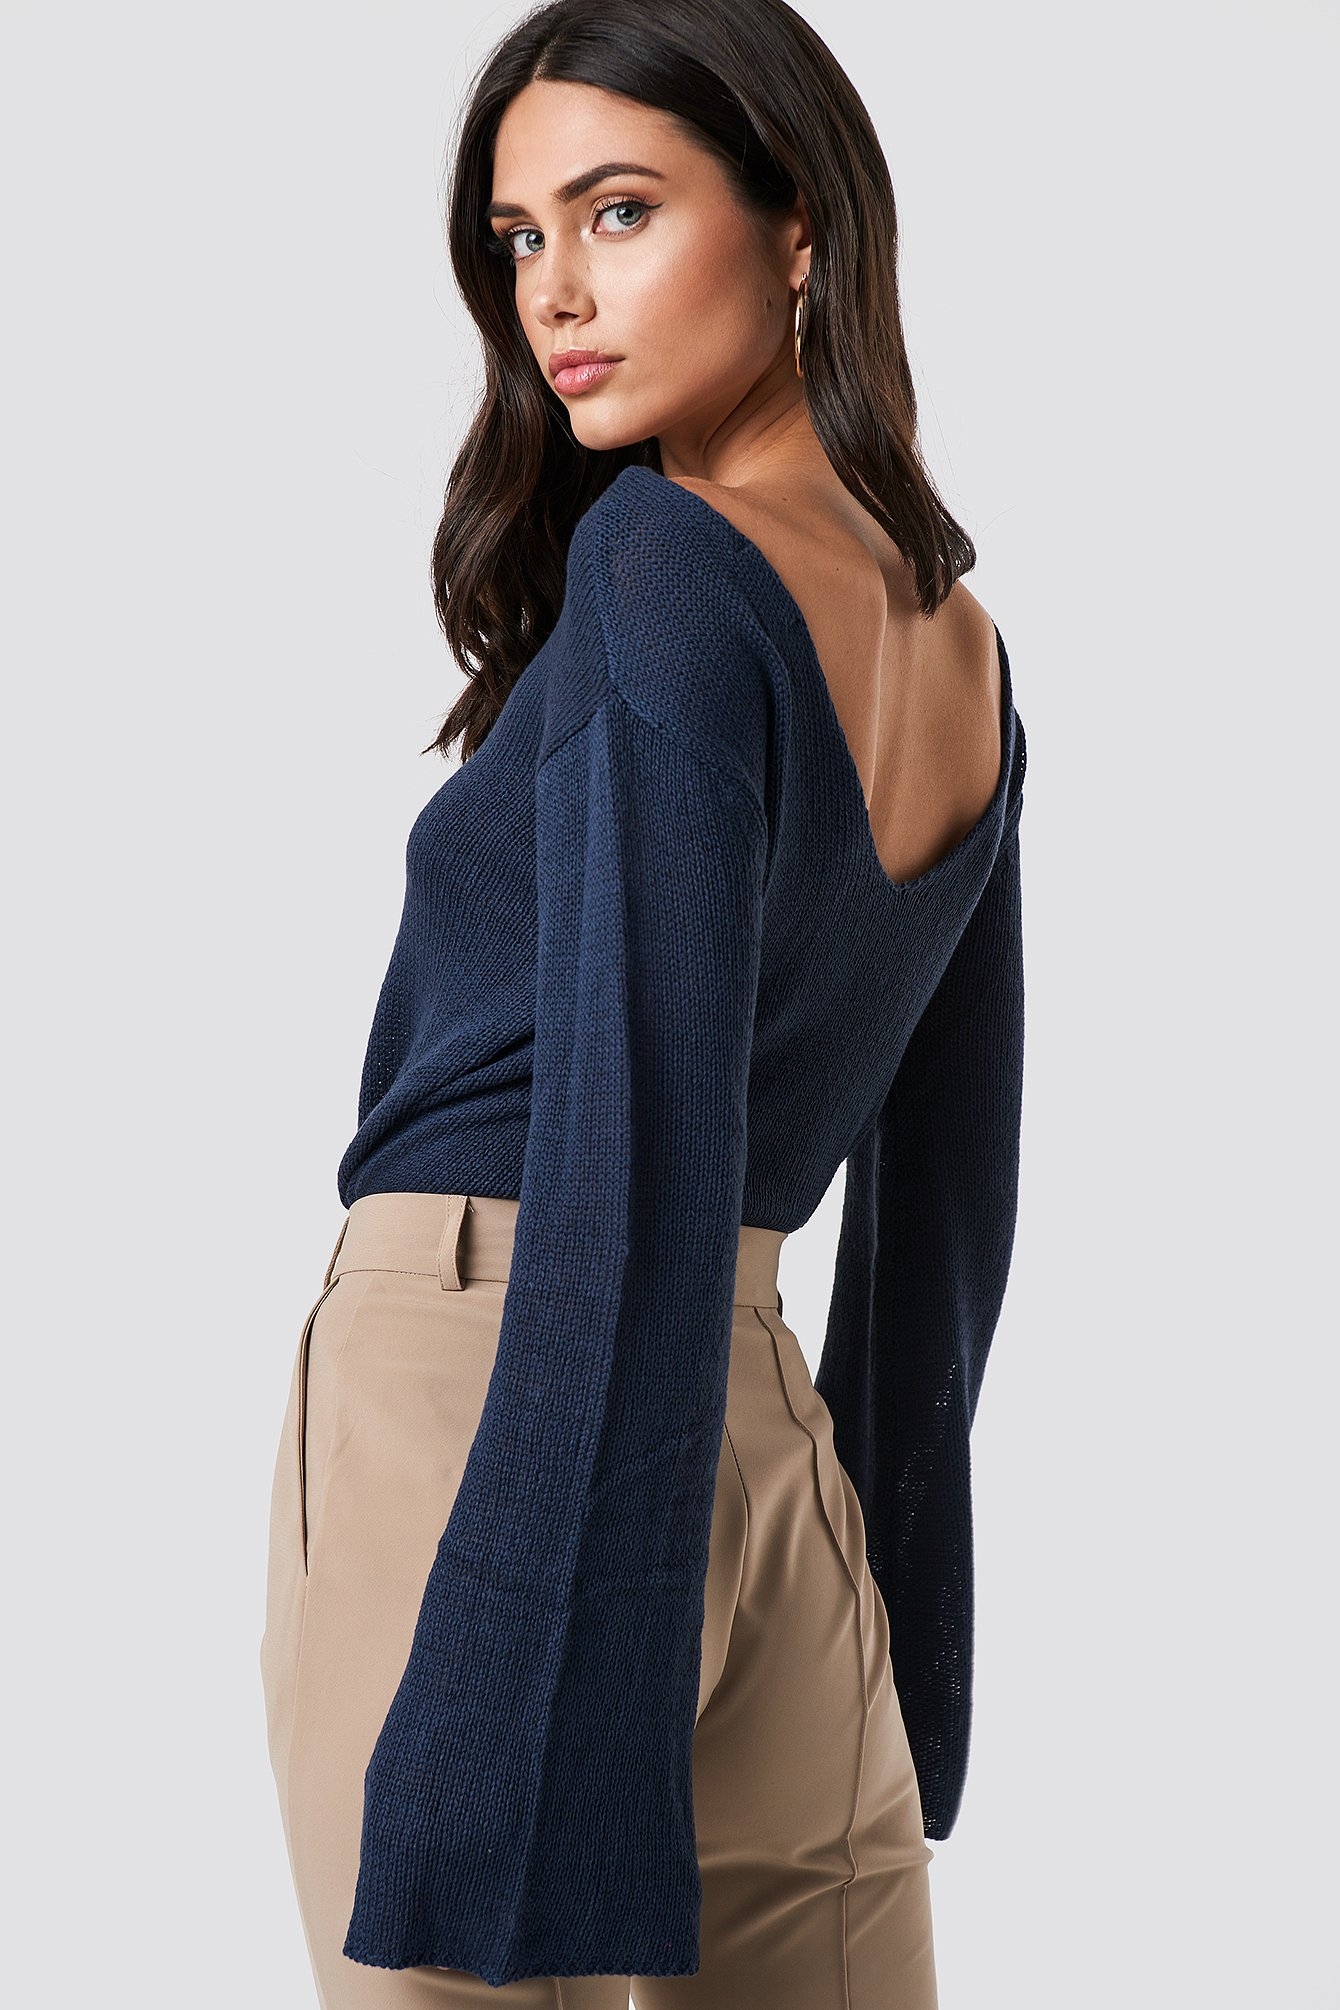 rut&circle -  Vanessa Back V-neck Knit - Blue